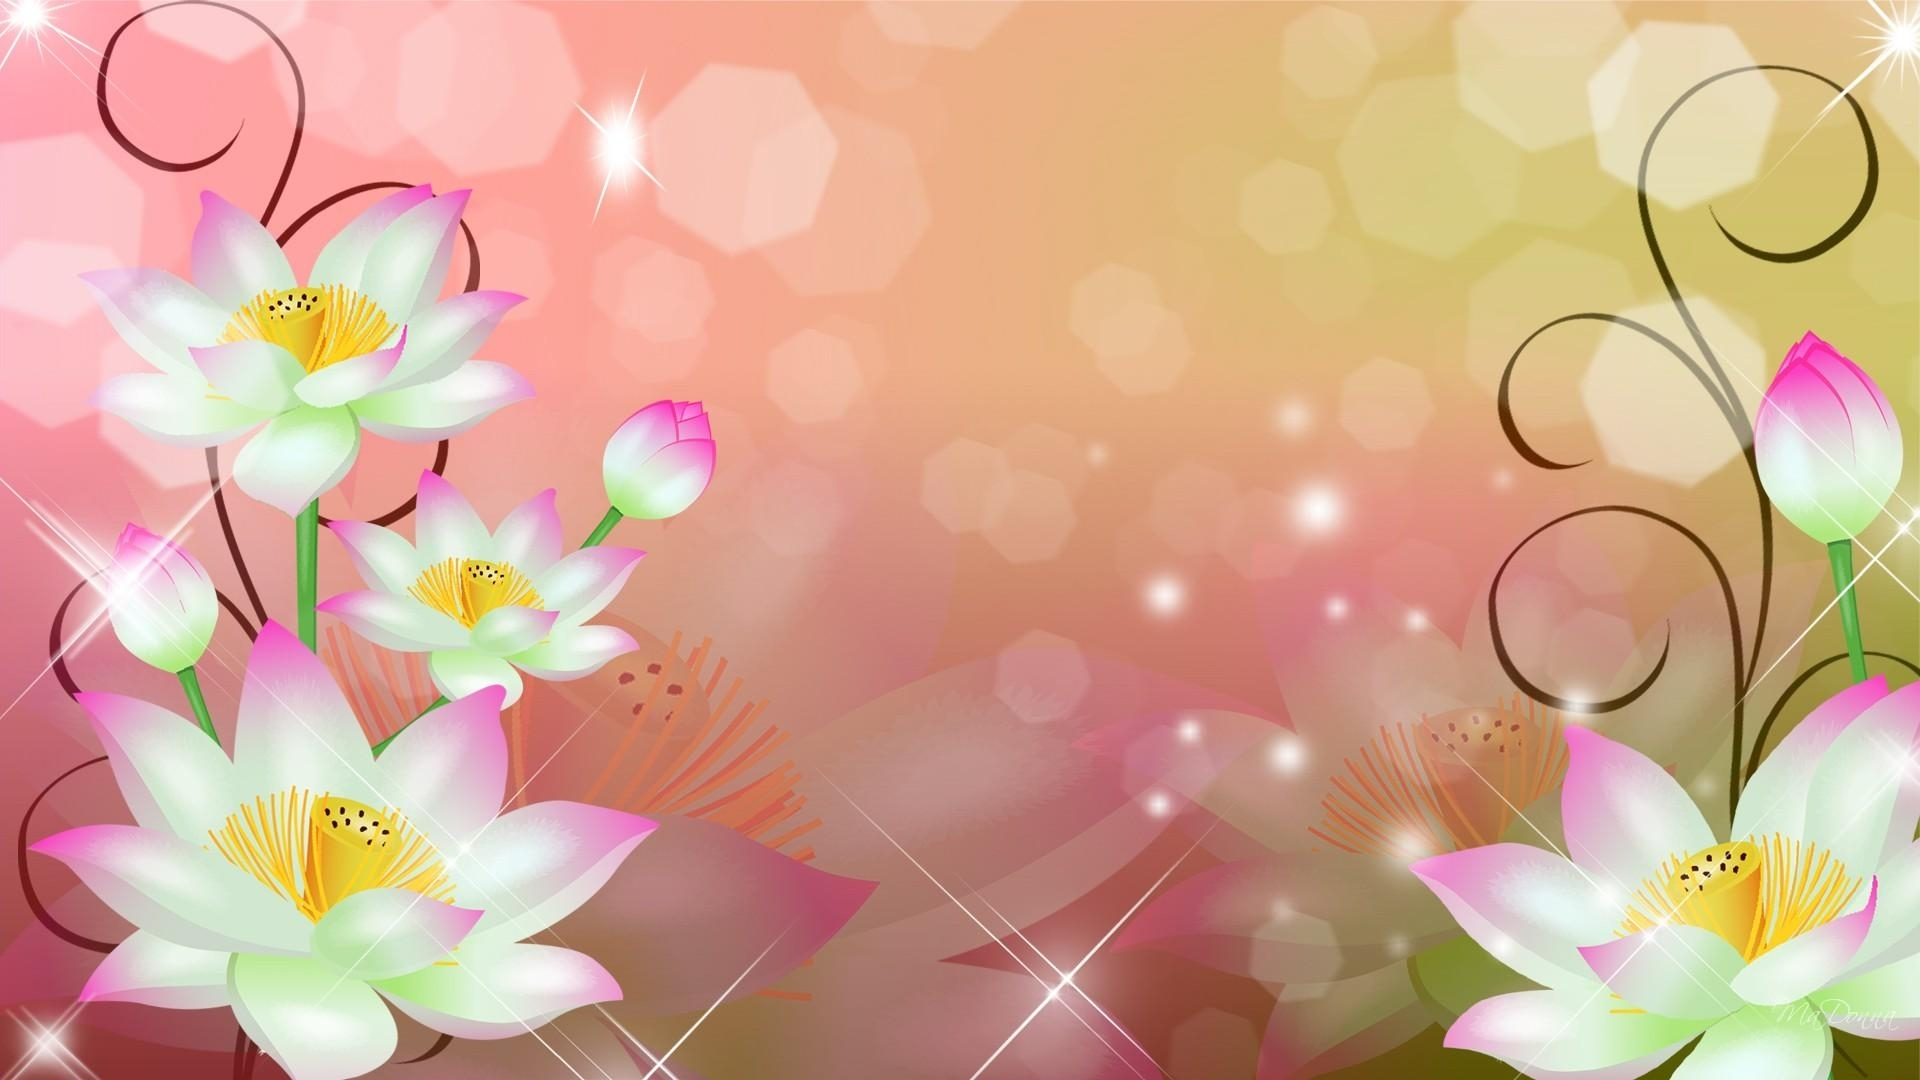 Wallpaper Flower Background - WallpaperSafari